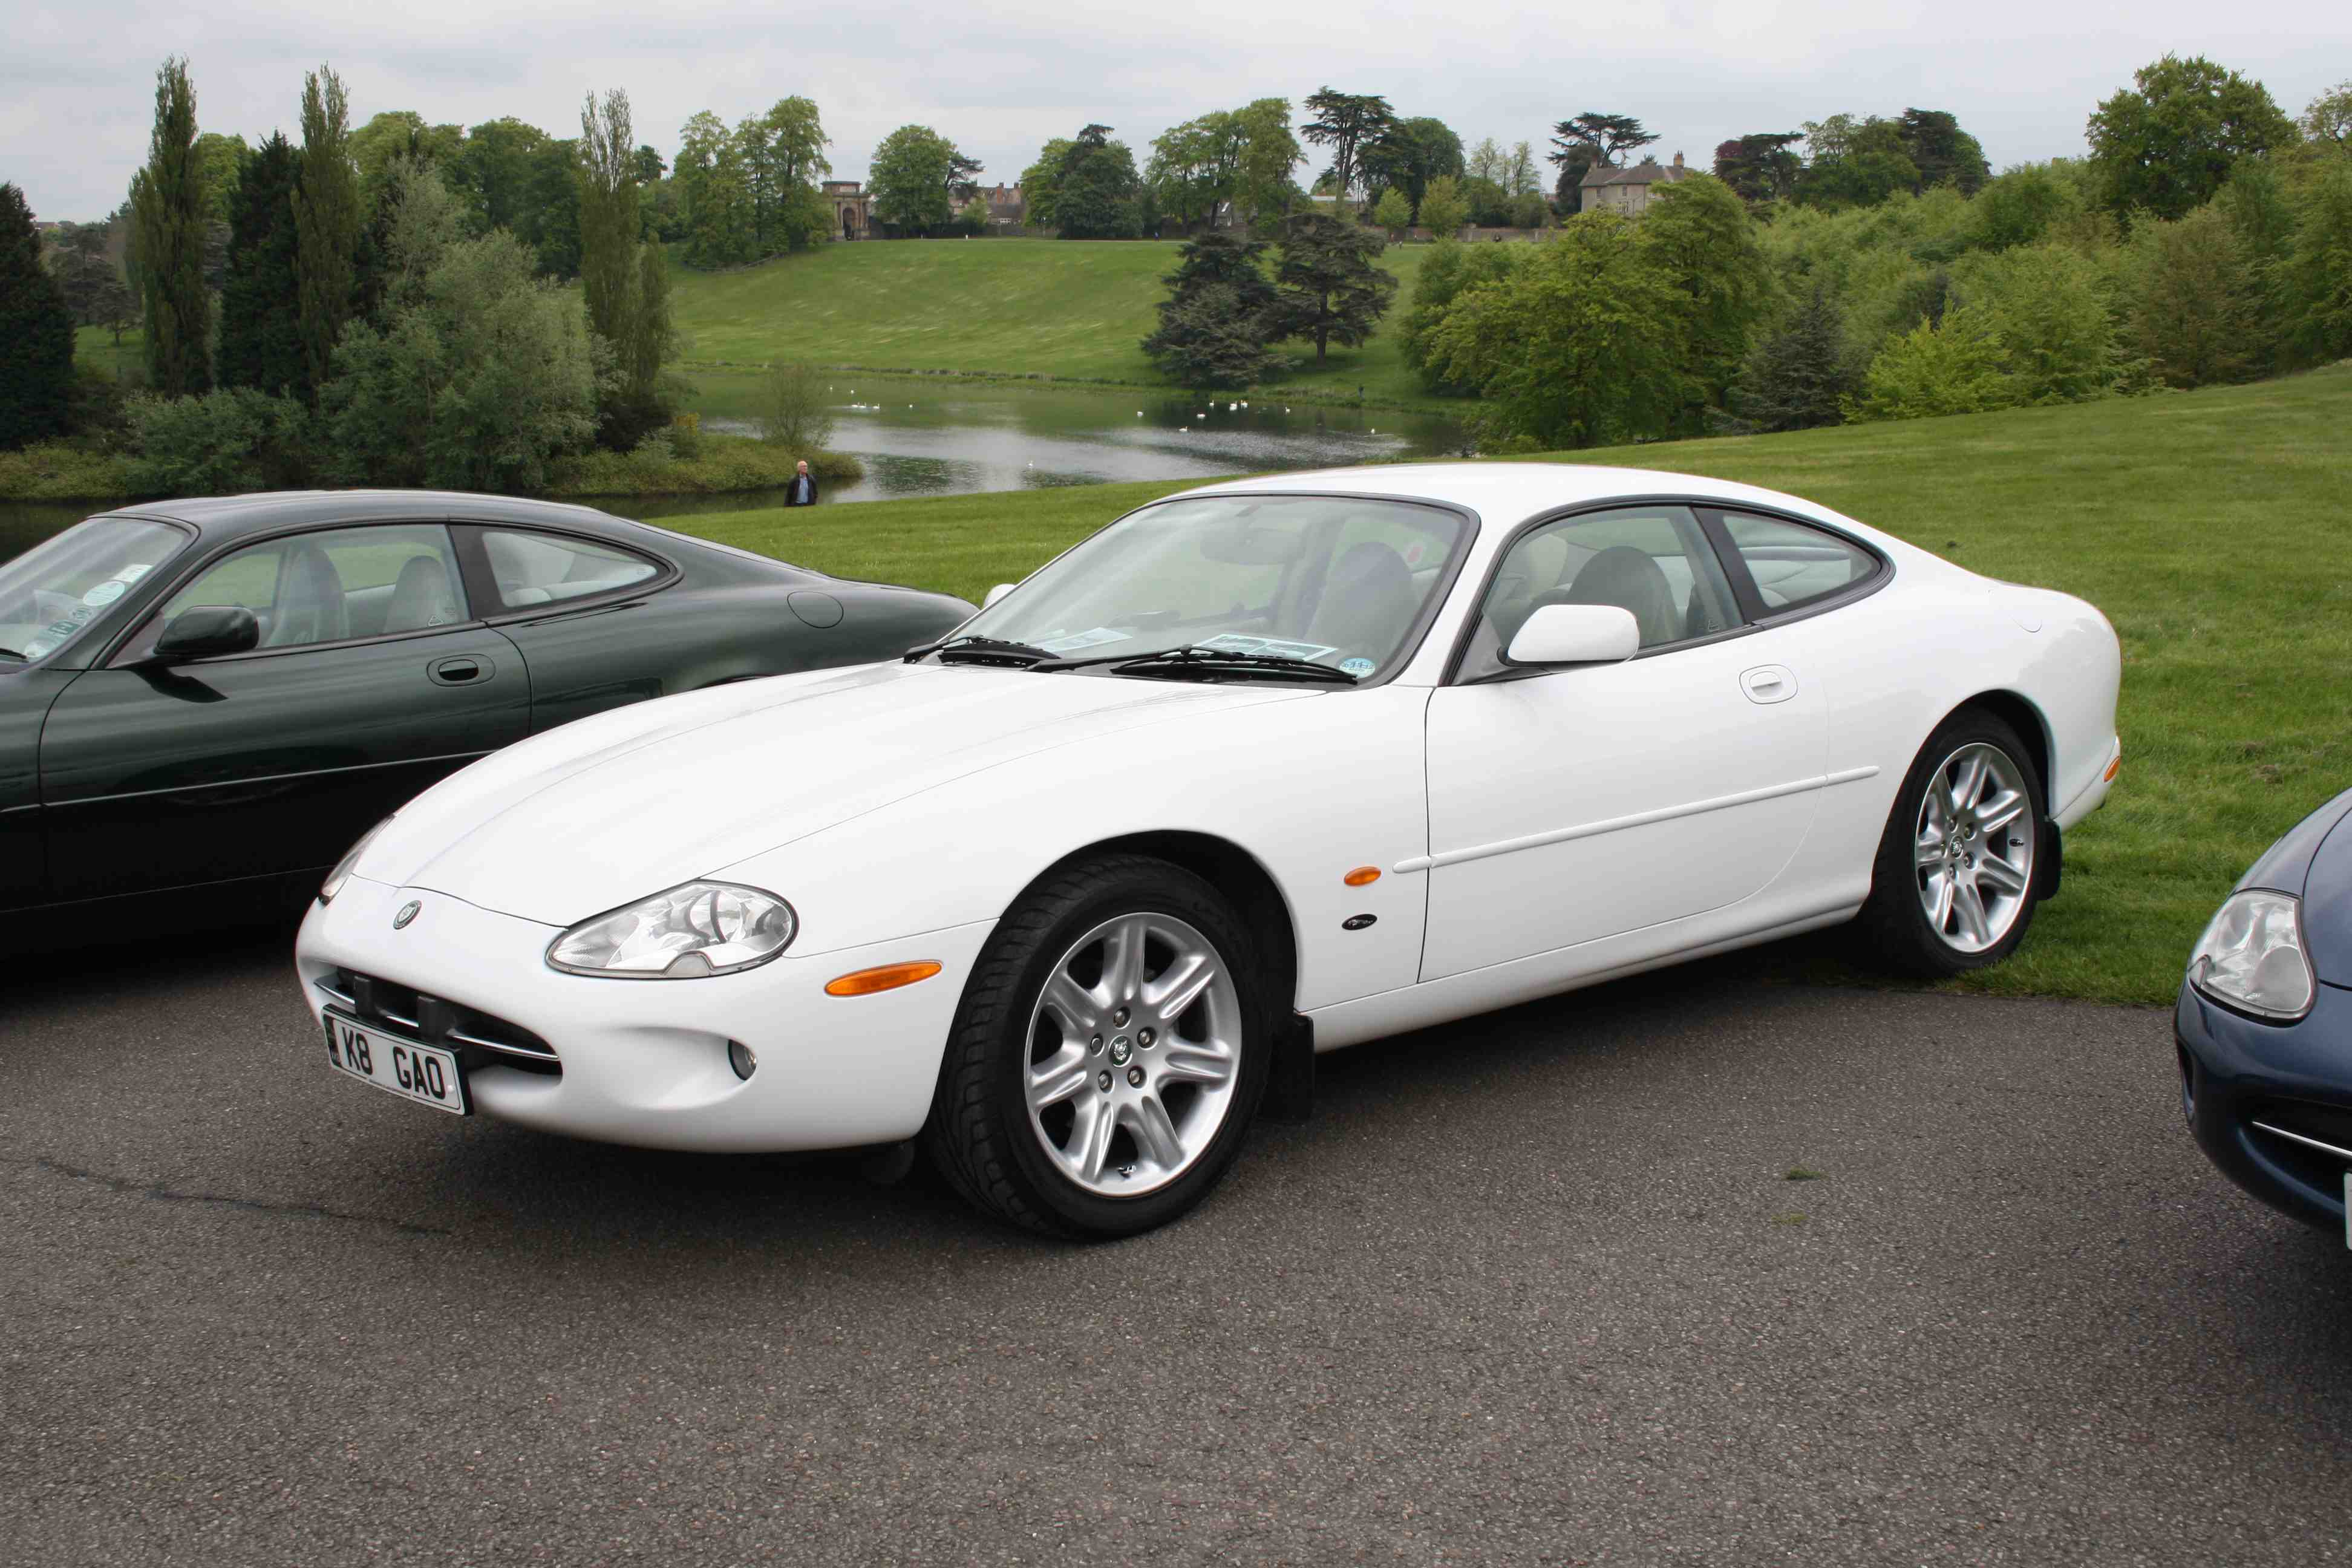 Jaguar Xkr Wiring Diagram Page 2 And Schematics Xj8 Fuse For Xk8 Free Diagrams